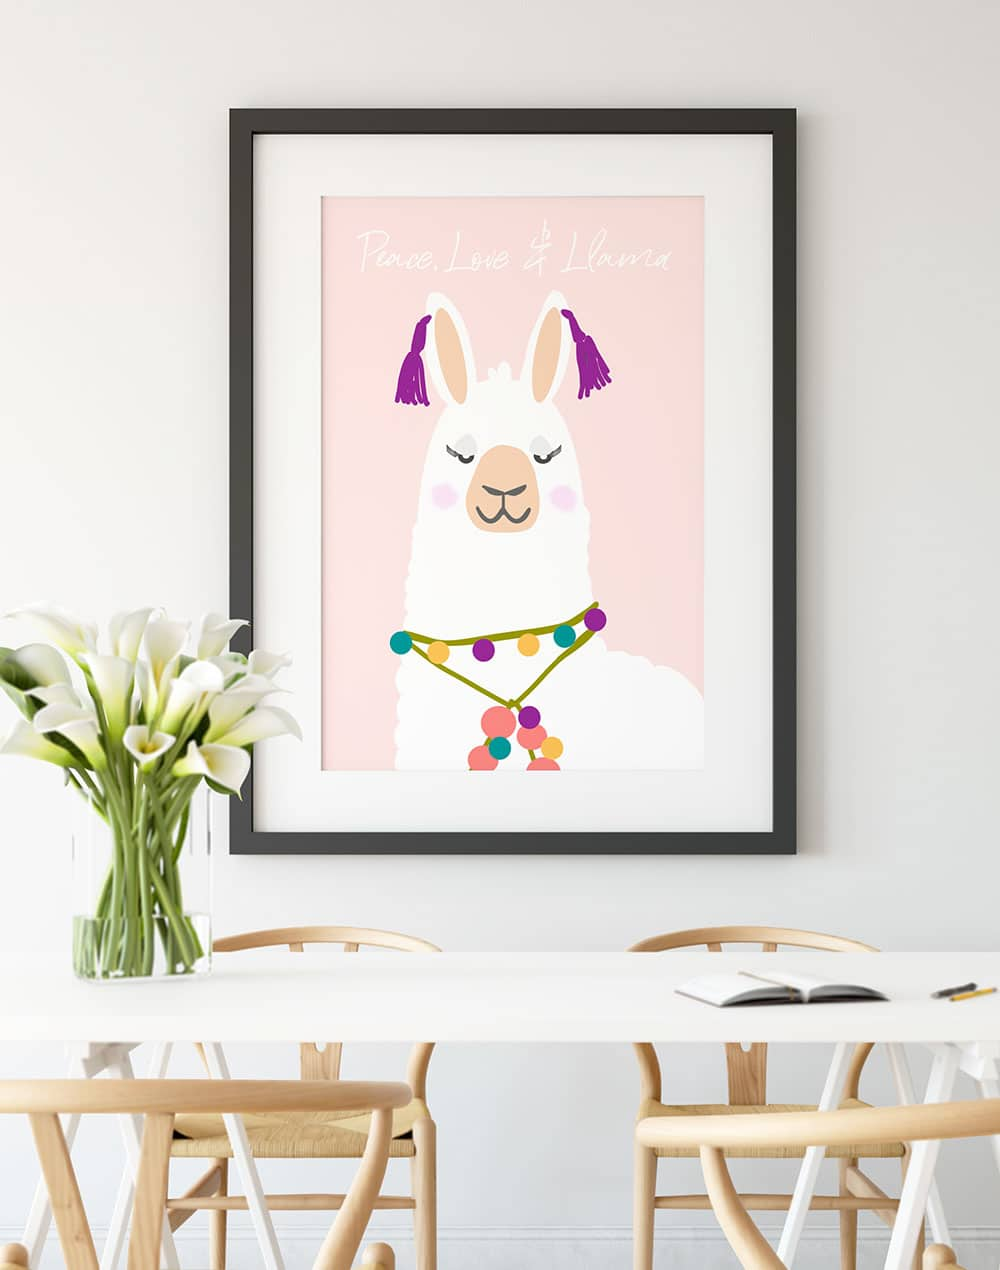 Llama day, Peace, Love and Llamas, National Llama day Printable Wall Art, Llama Free Download, llama decor, Alpaca Wall Art